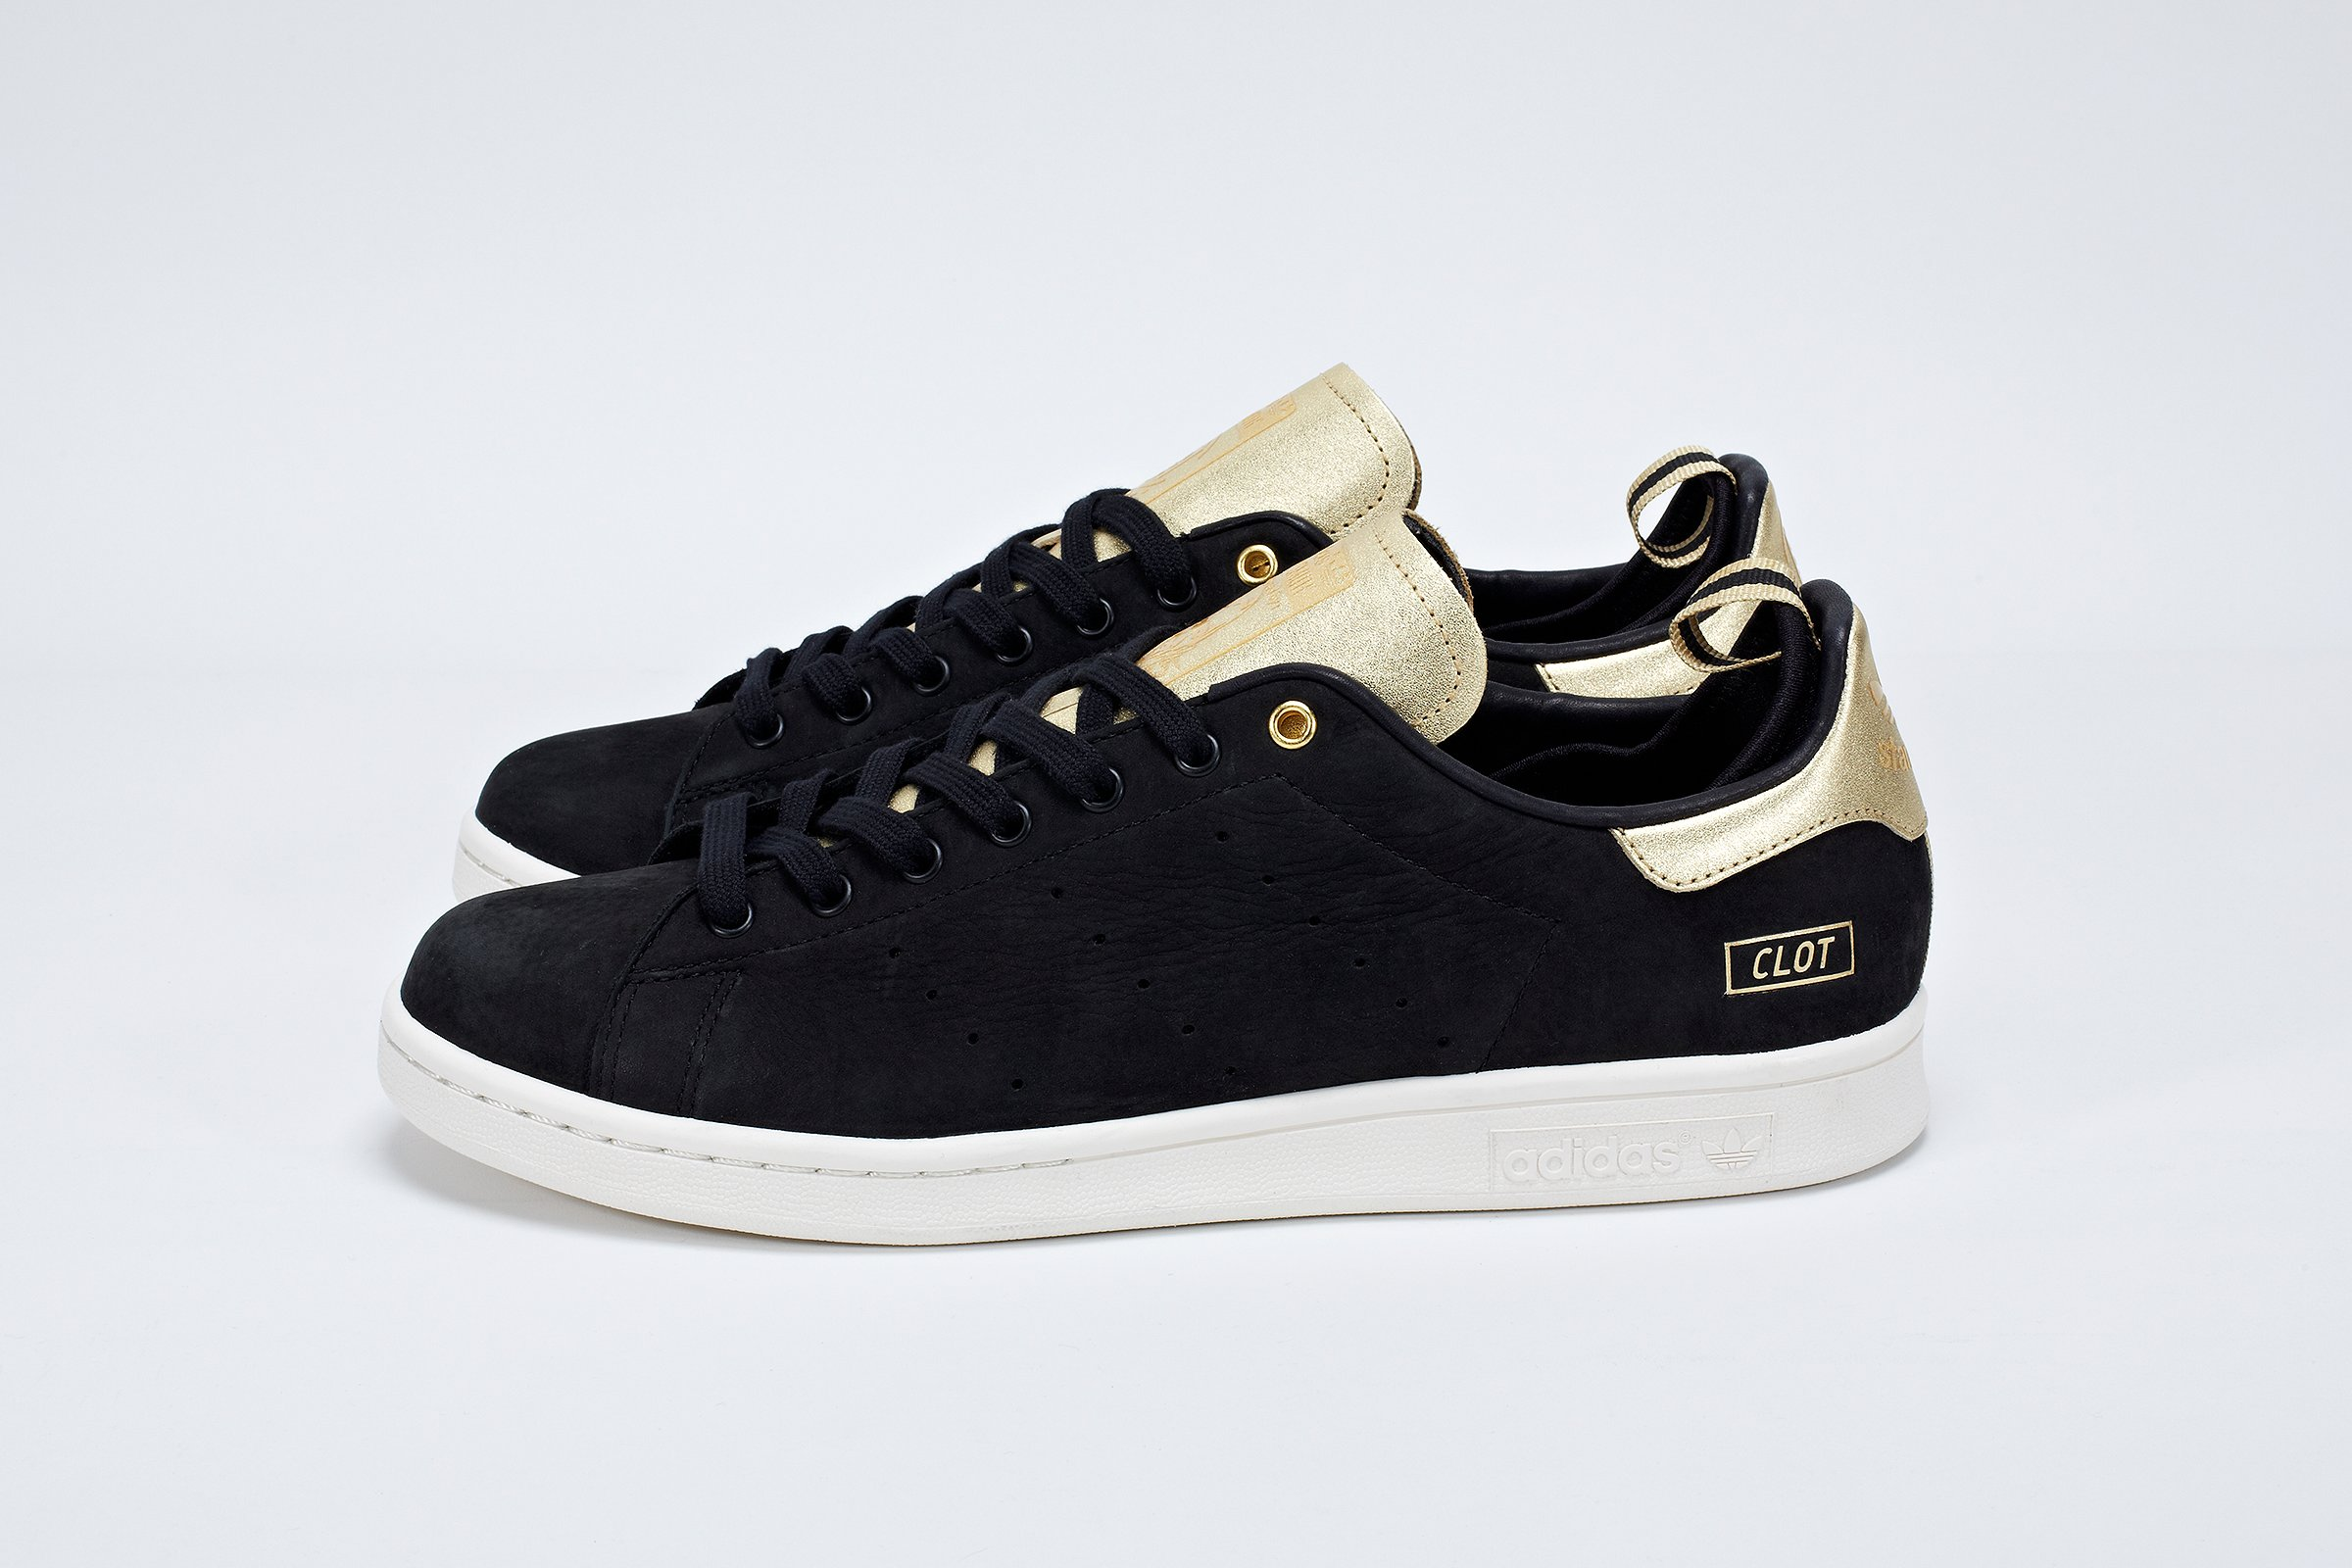 clot-adidas-stan-smith-release-date-announced-2